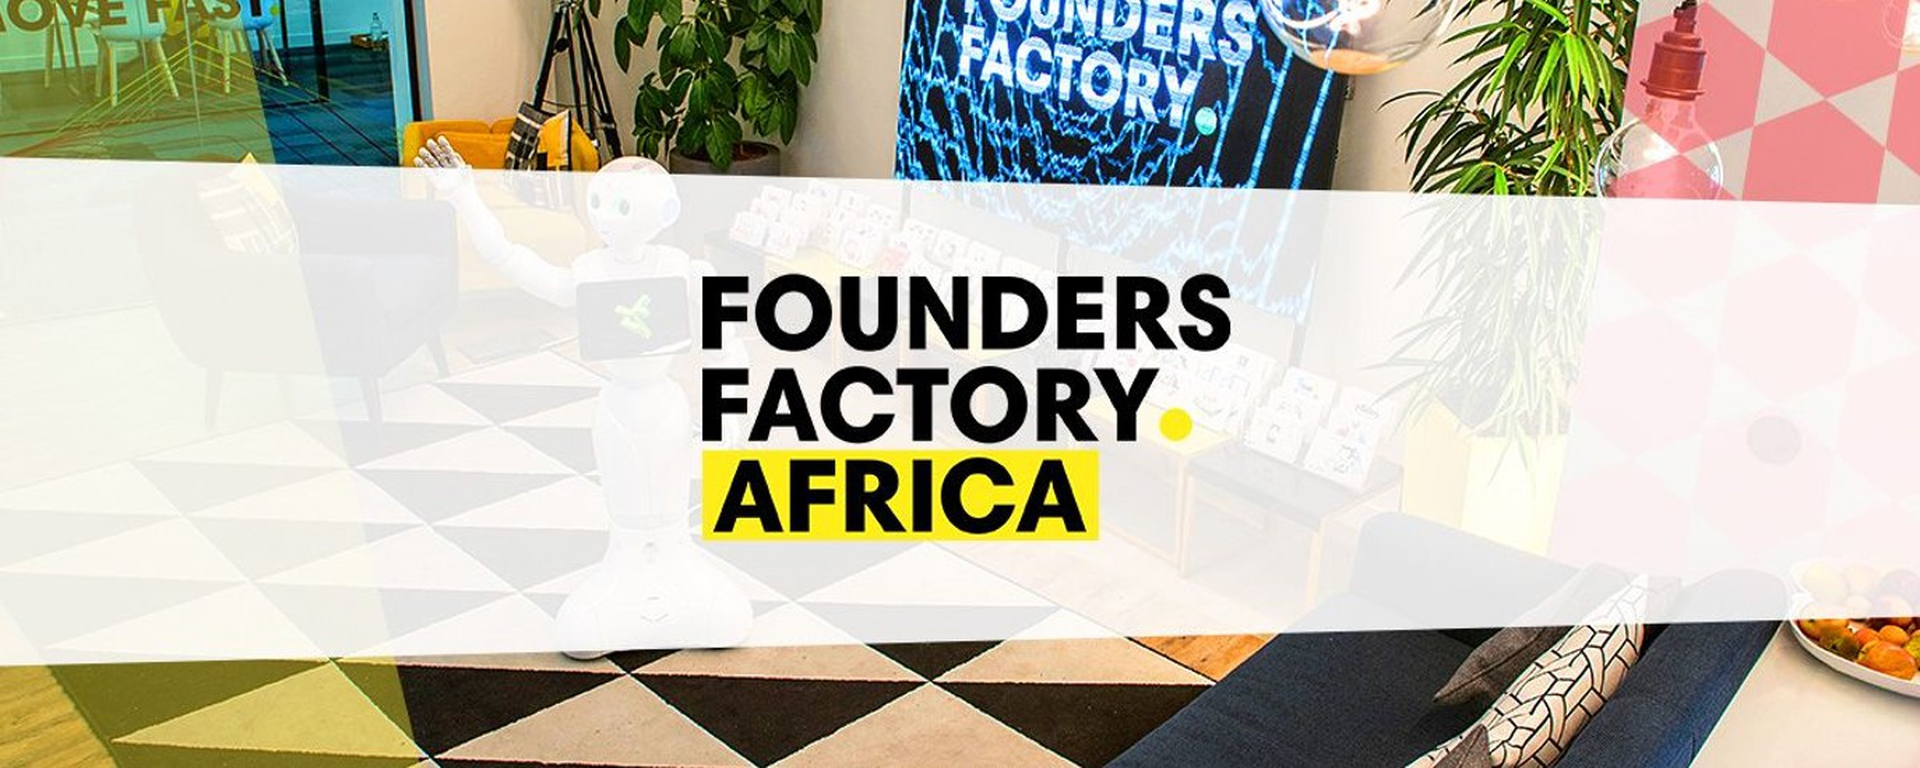 Founders Factory Africa - Healthcare Entrepreneurs Movemeback African opportunity cover image